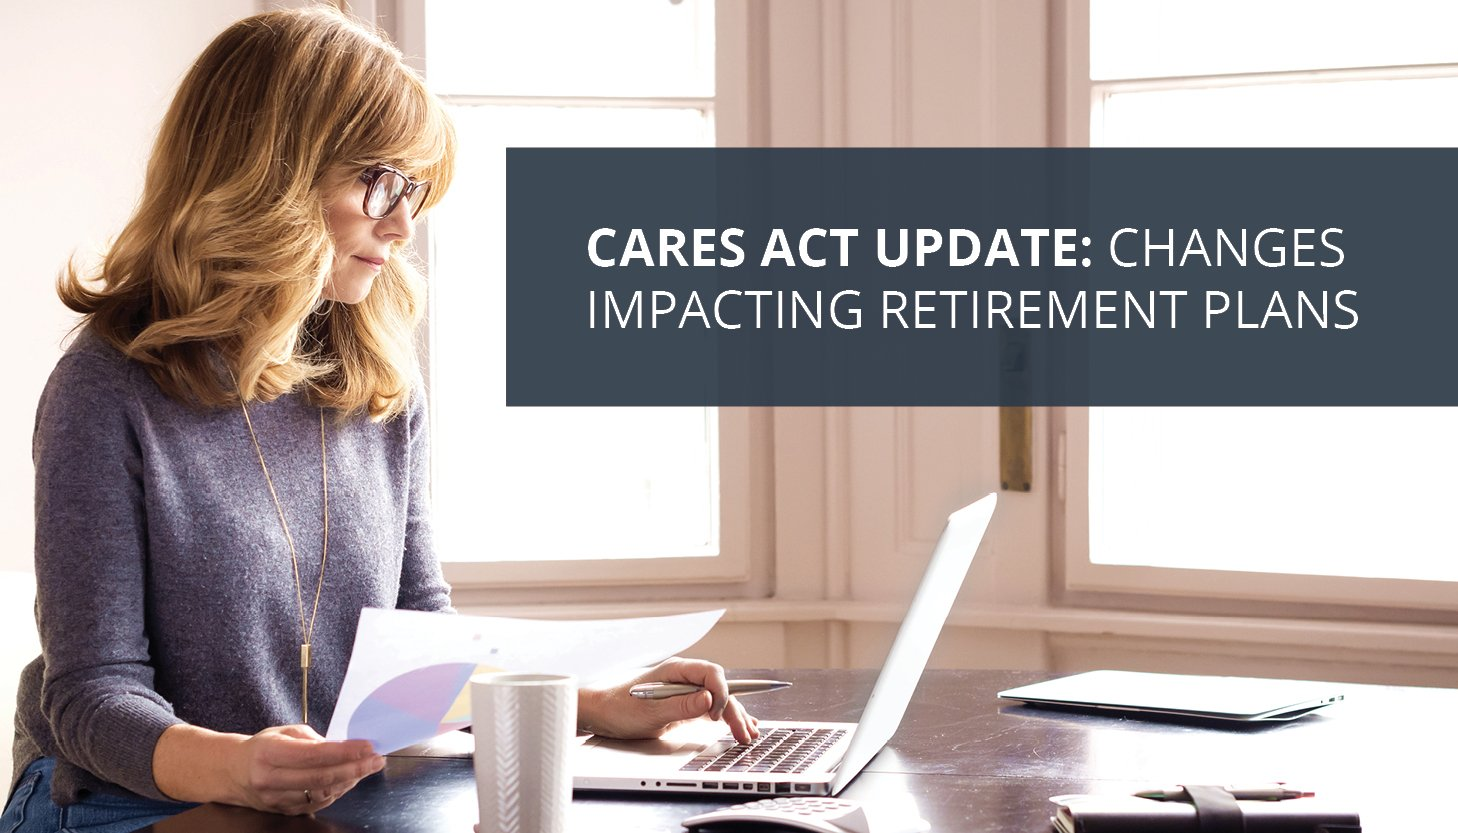 Headline Image - CARES Act Changes Impacting Retirement Plans